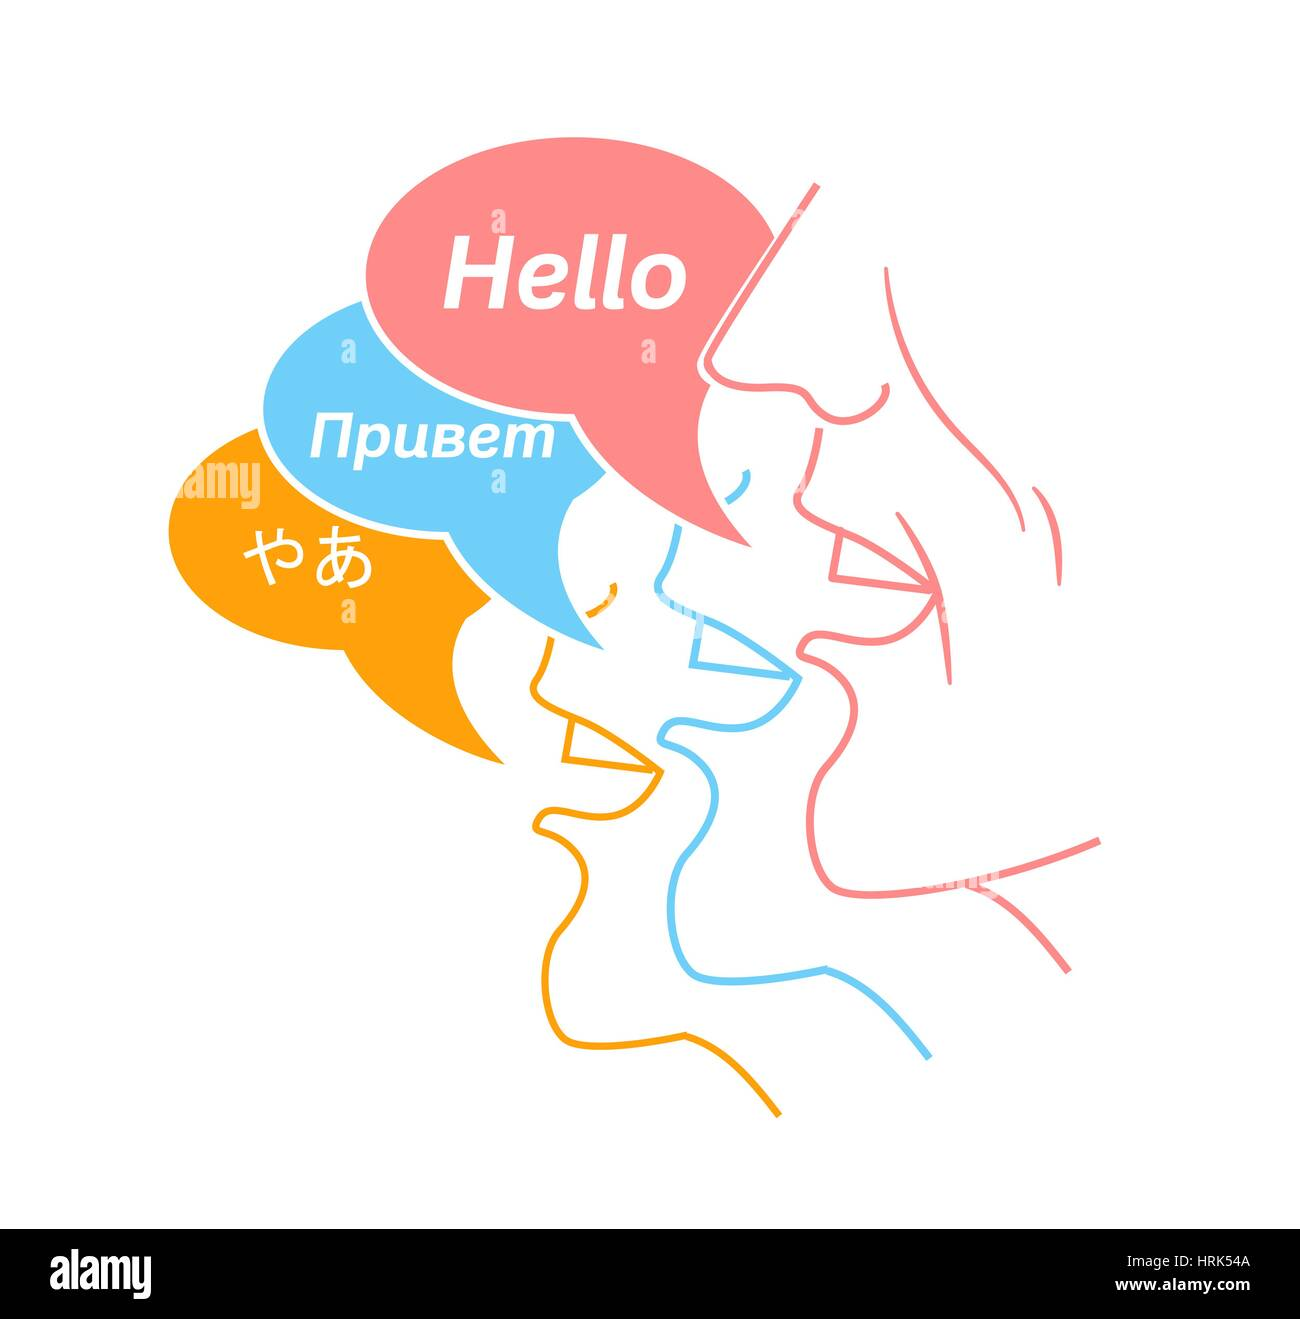 Concept of the mother language in the form of greeting in concept of the mother language in the form of greeting in different languages icon in the linear style kristyandbryce Gallery